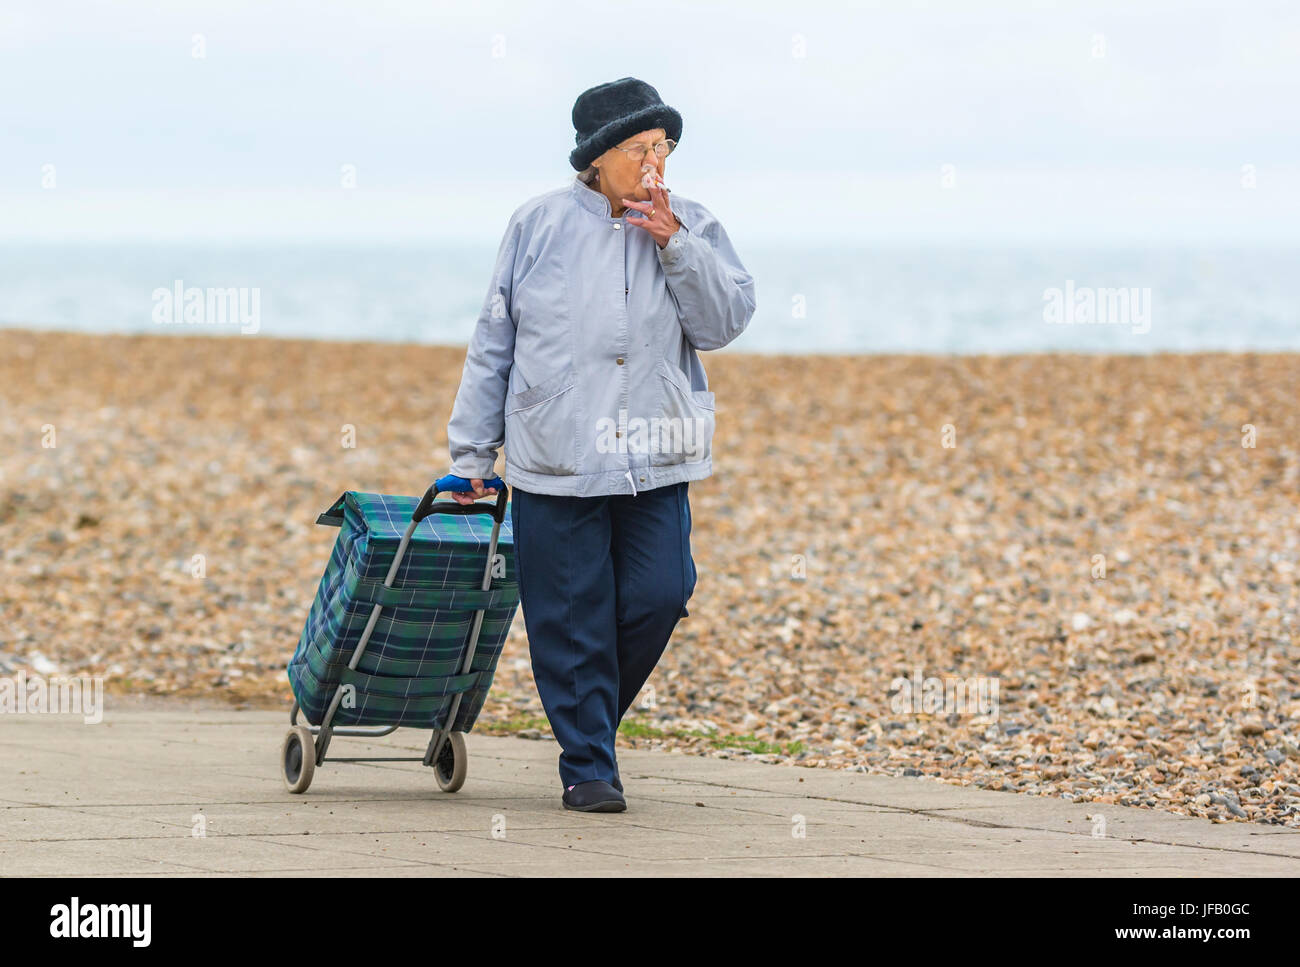 Elderly lady pulling a shopping trolley while smoking. - Stock Image